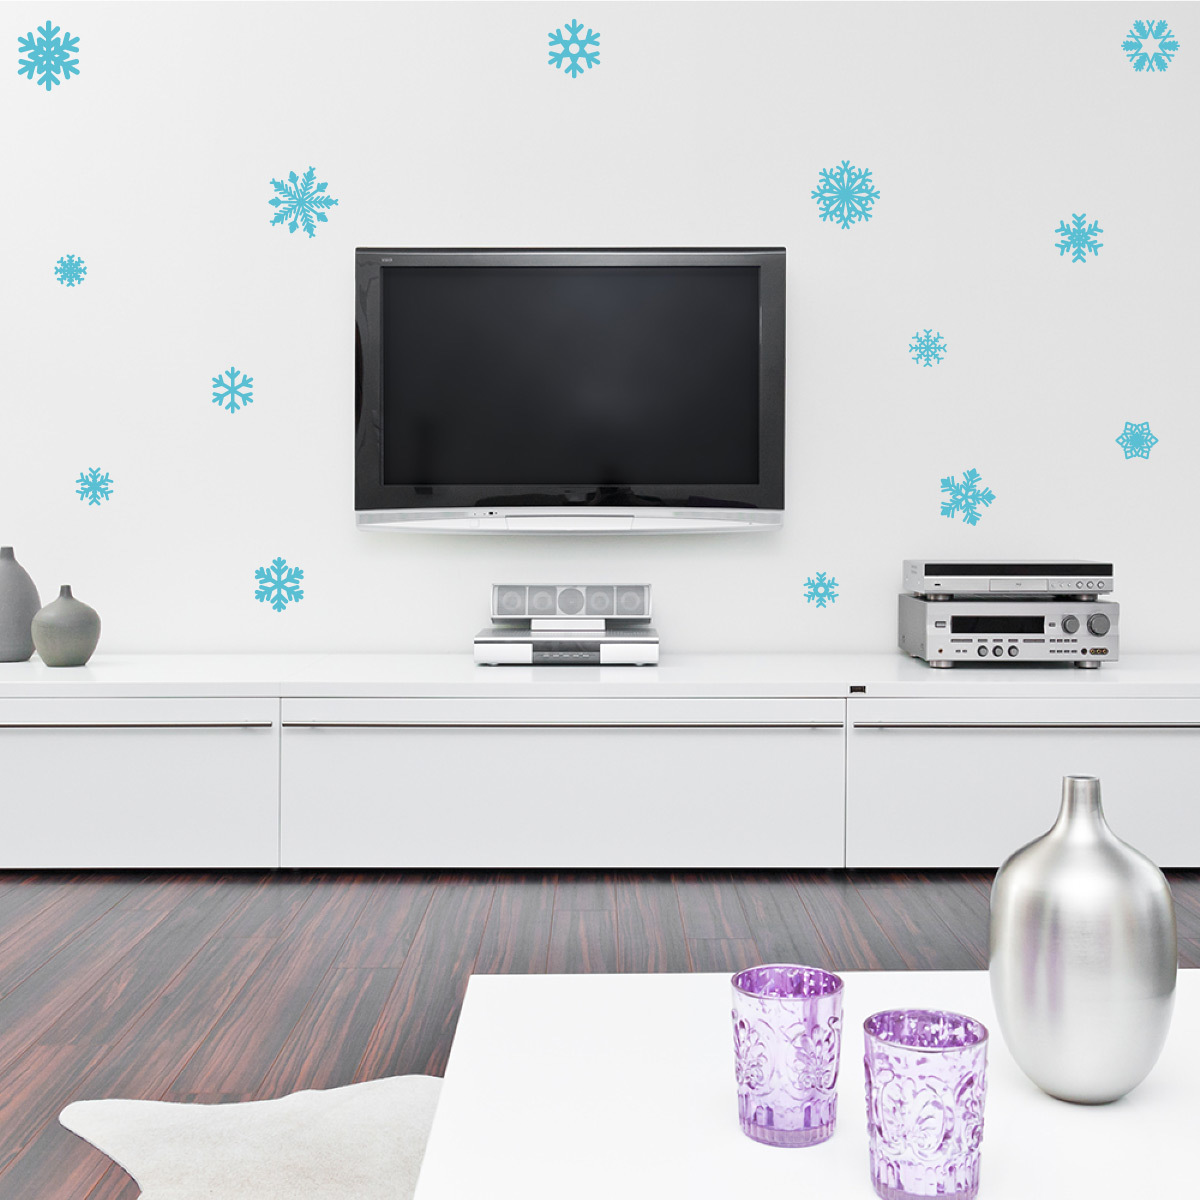 snowflake wall decal